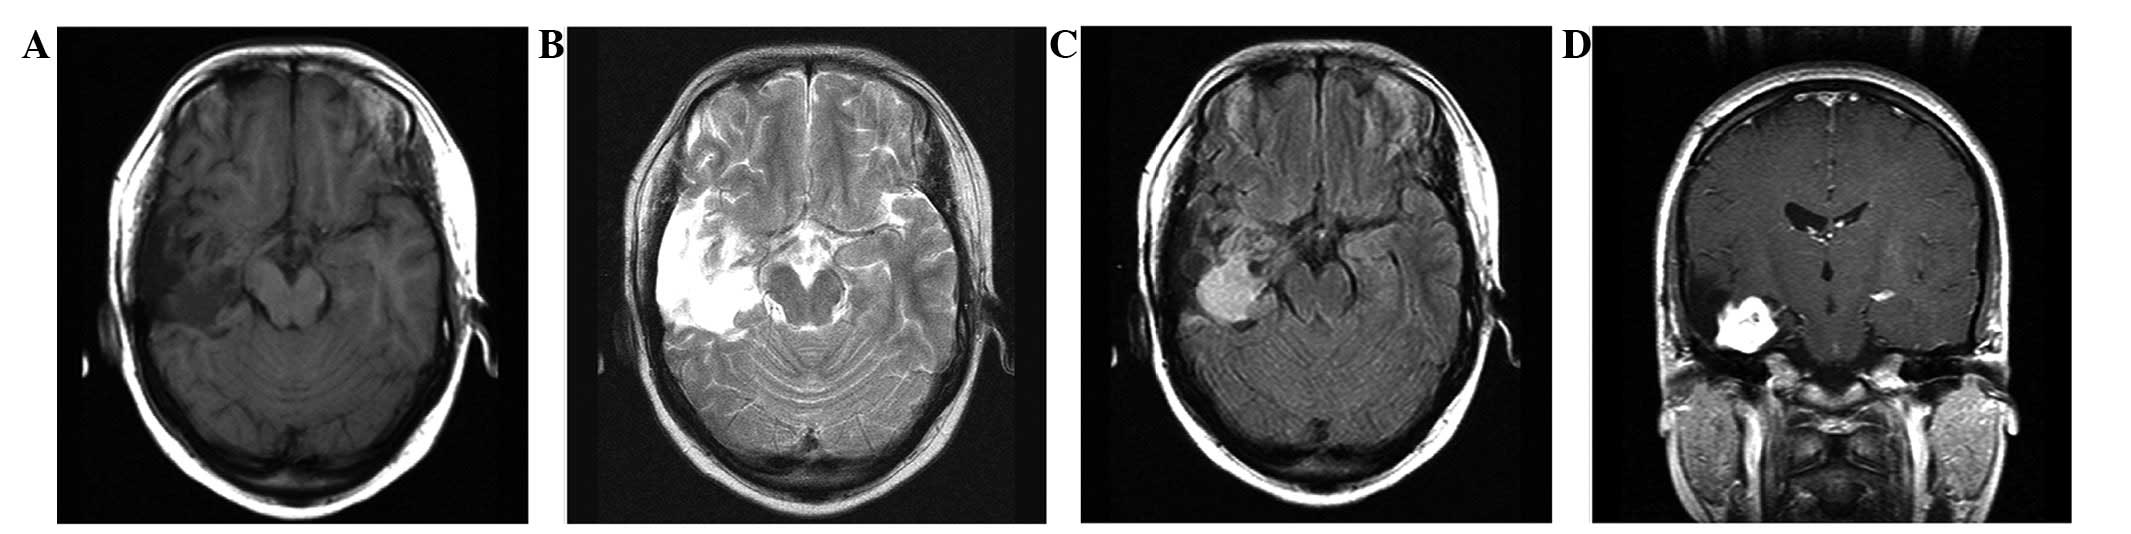 recurrence  histological evolution  dysembryoplastic neuroepithelial tumor  case report